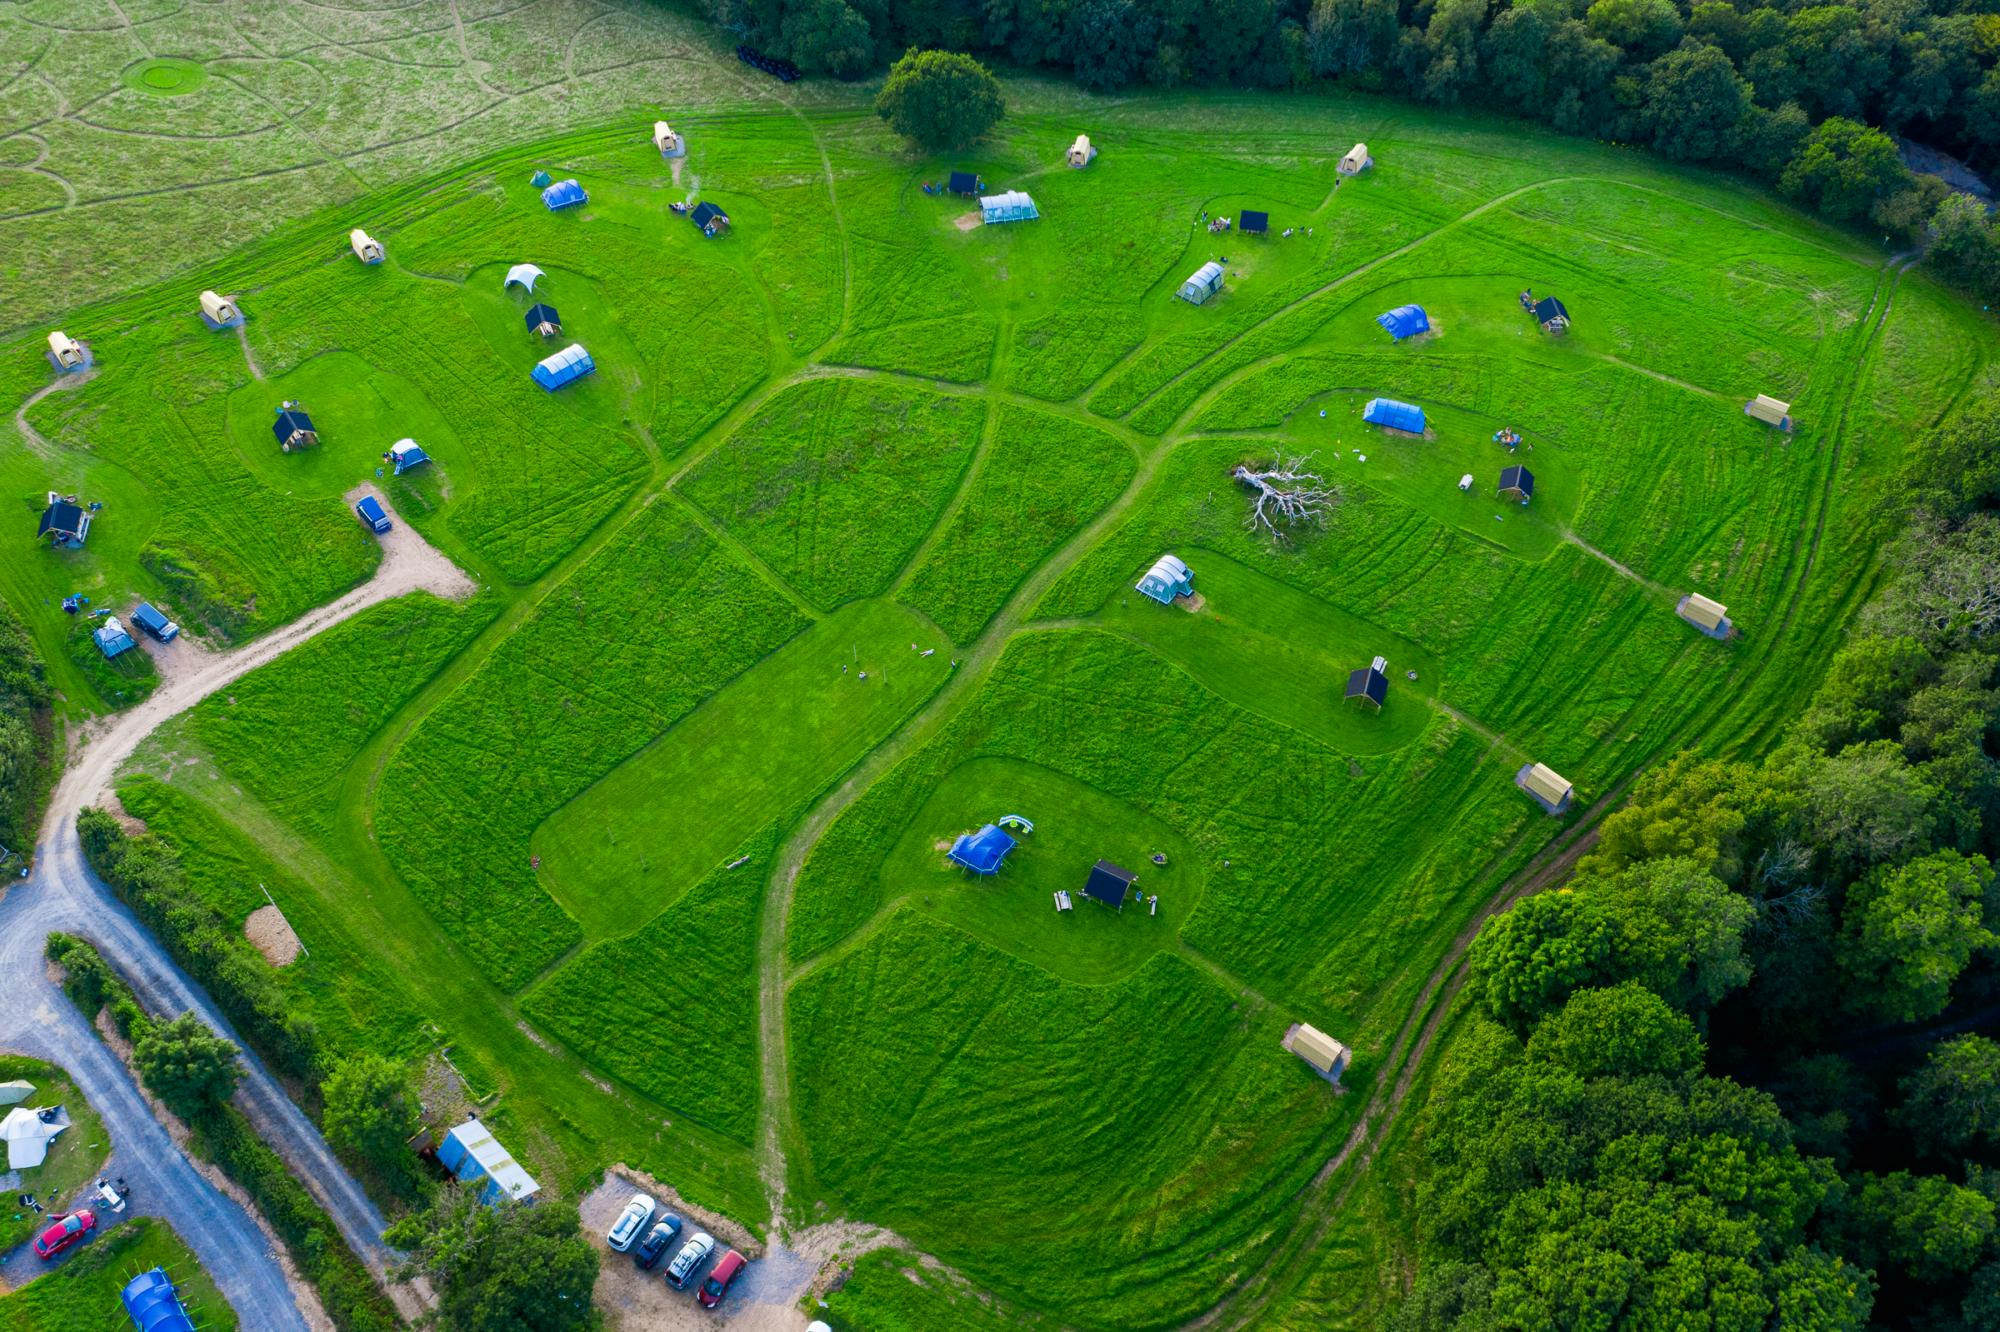 Campsites certified by the Greener Camping Club